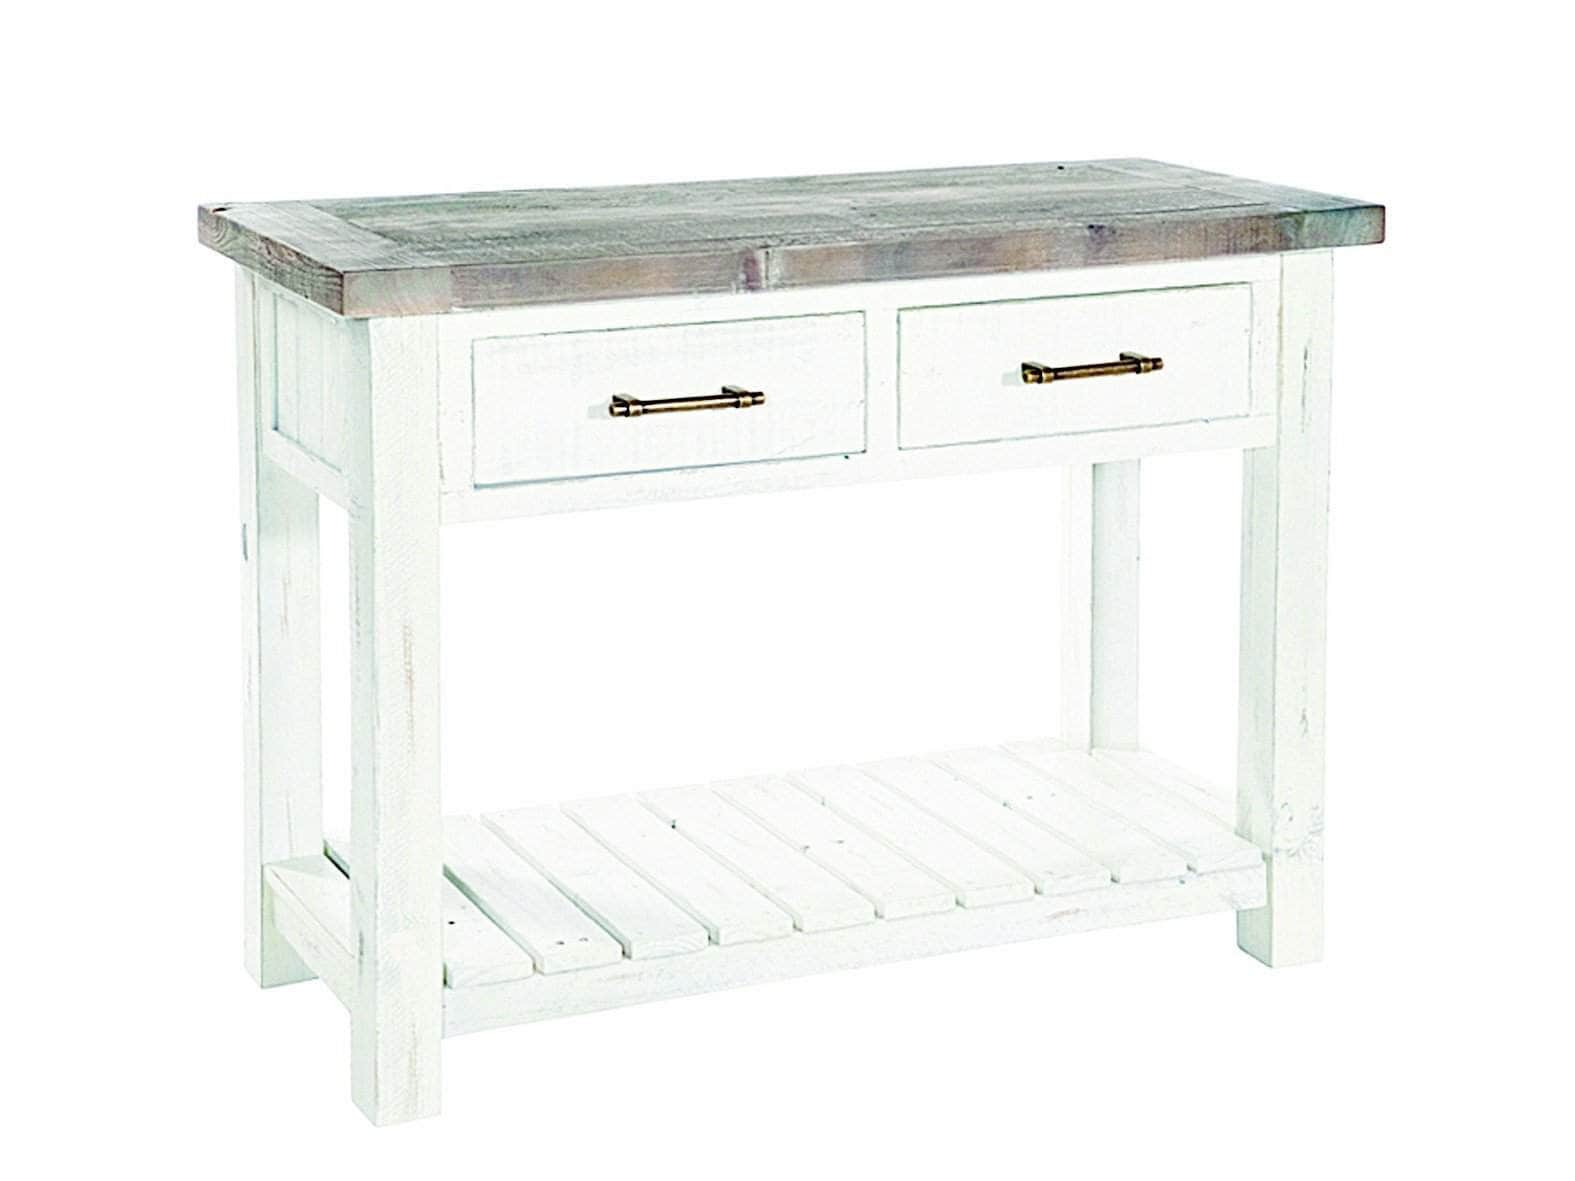 Paxford ivory white console table, featuring under shelf and two storage drawers